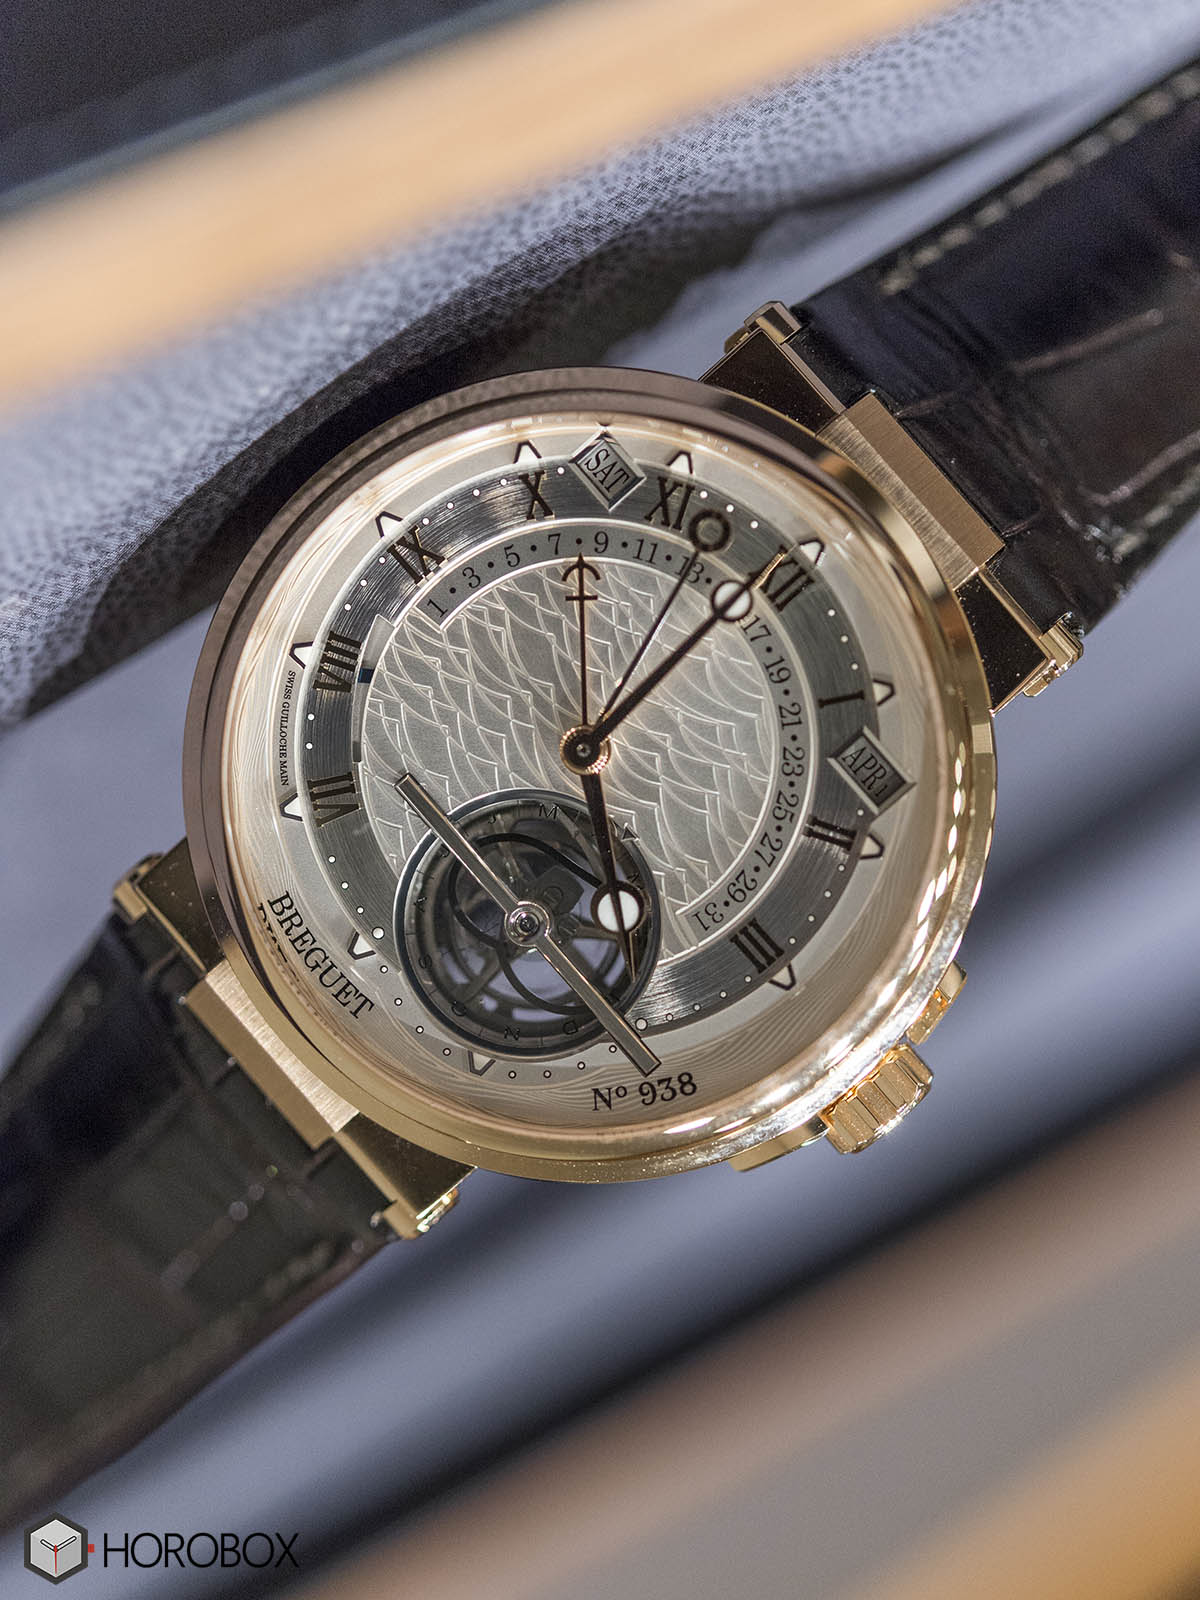 Breguet-Marine-Equation-Marchante-5887-18K-2.jpg